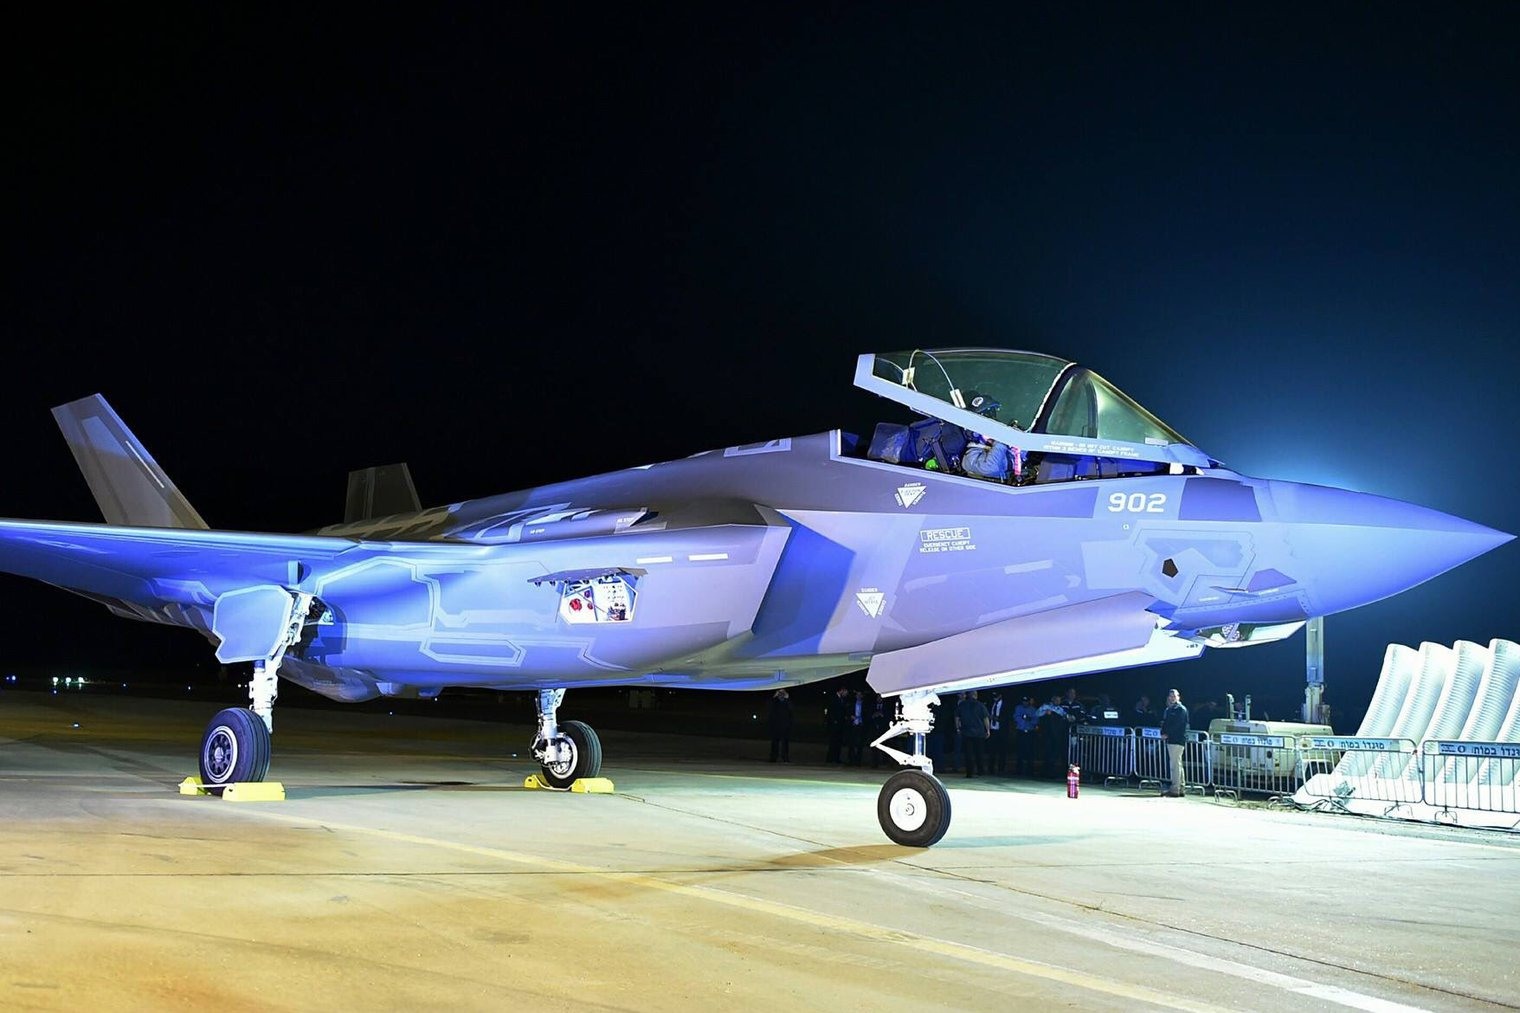 Israeli F-35s operating from 'Gulf soil' a genuine possibility